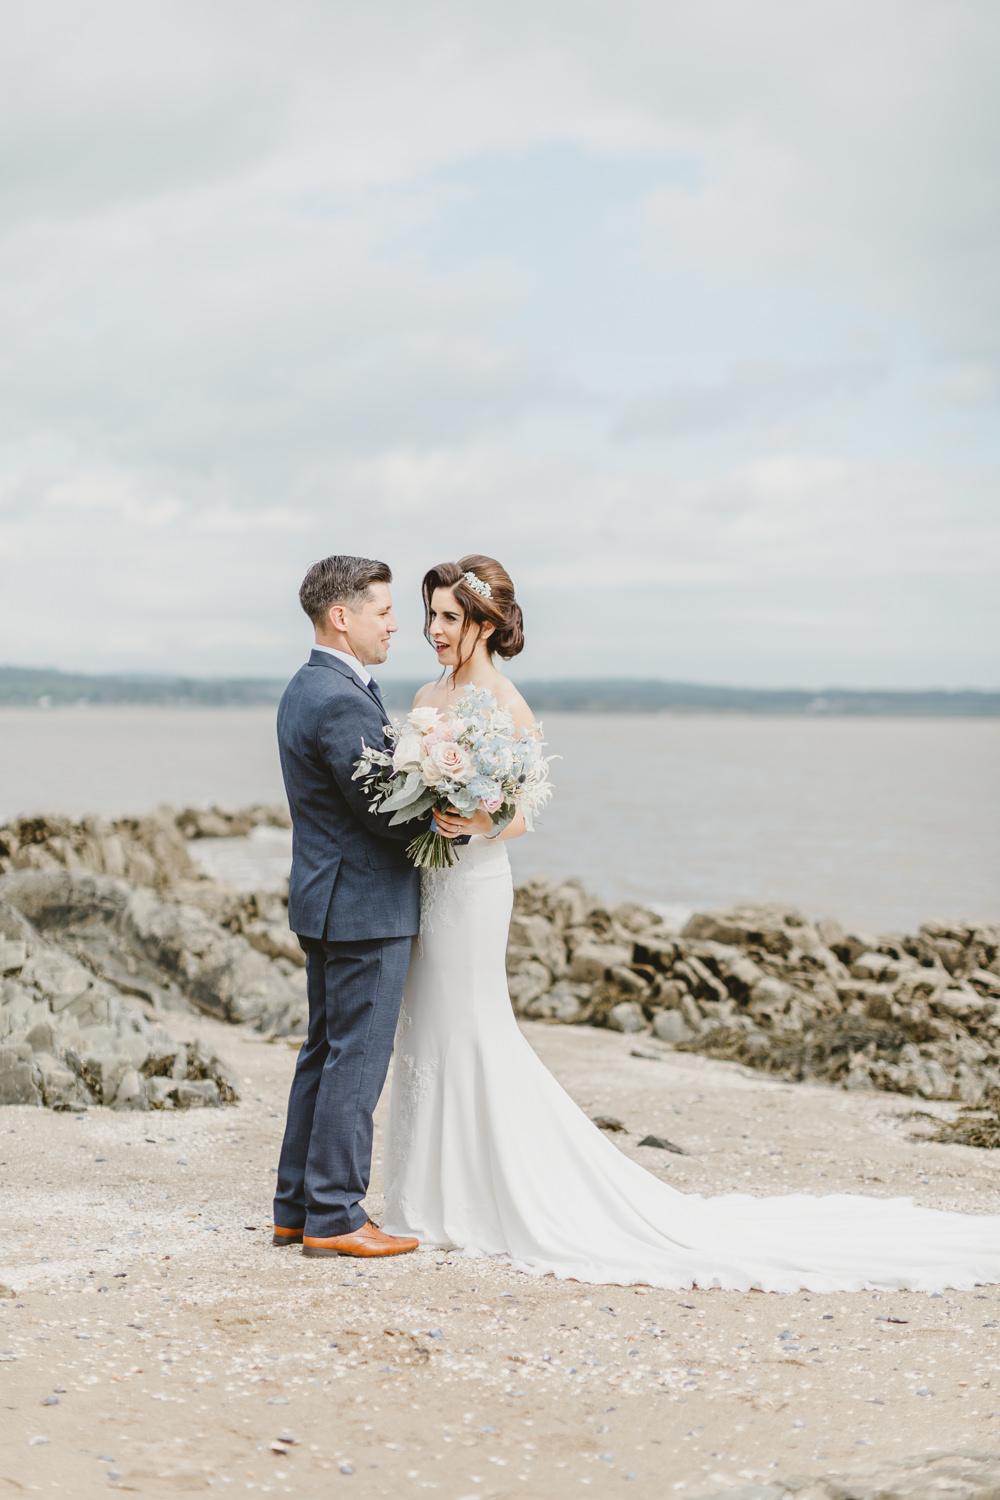 Bardot Sleeve Off Shoulder Dress Bride Bridal Gown Lace Sweetheart Fit Flare GG's Yard Wedding Amy Lou Photography